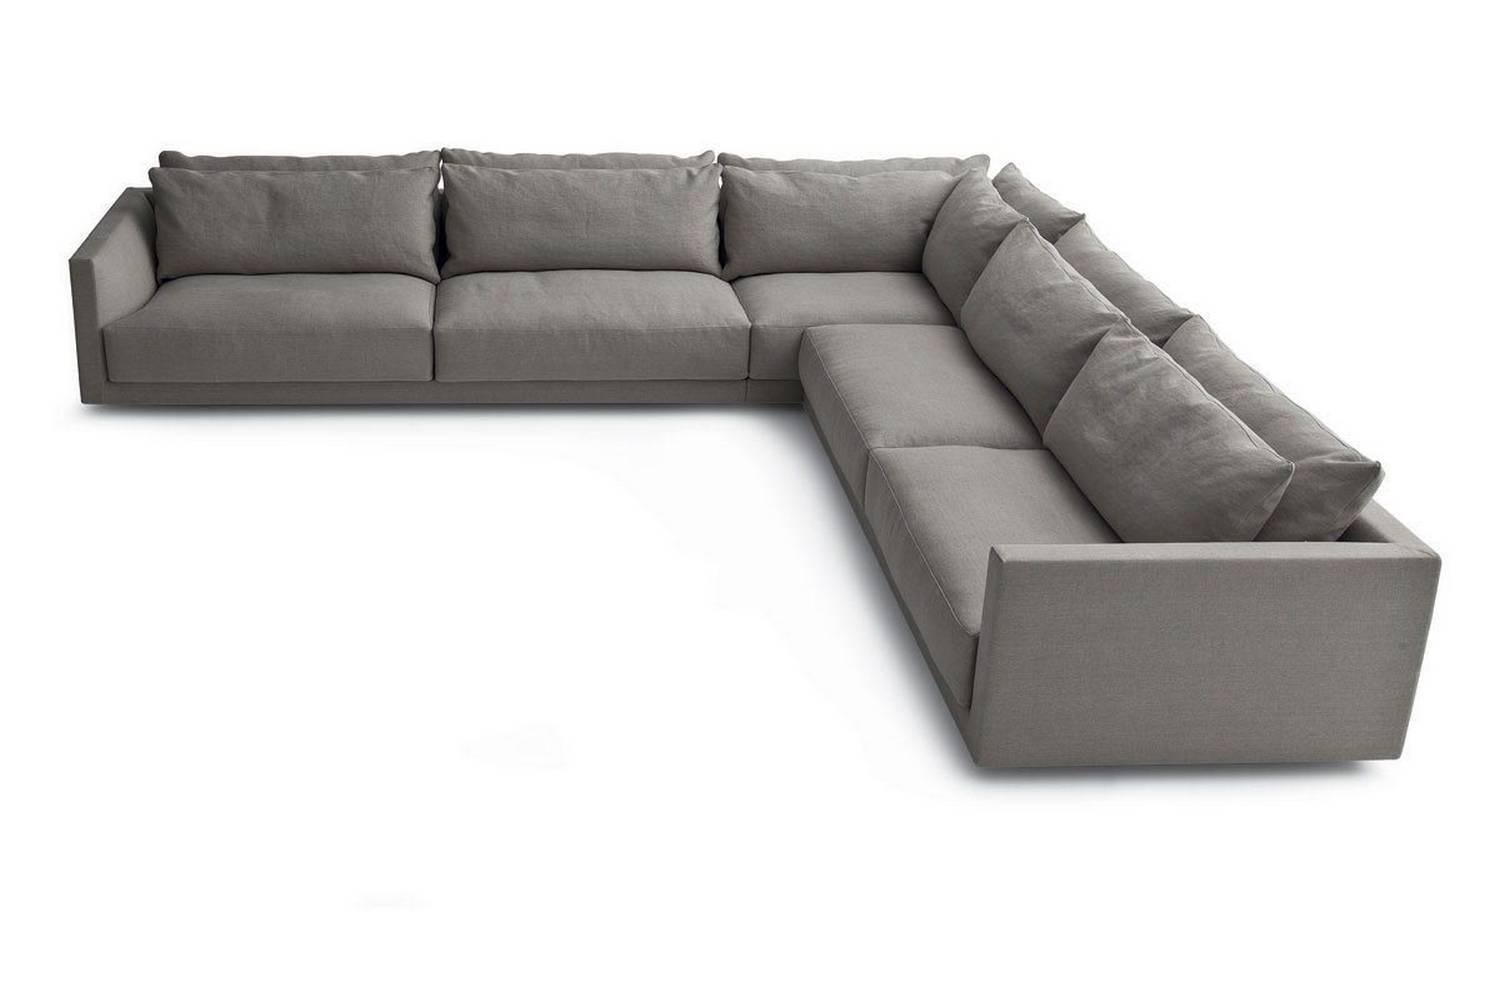 Designer Sofas For Sale Poliform Australia